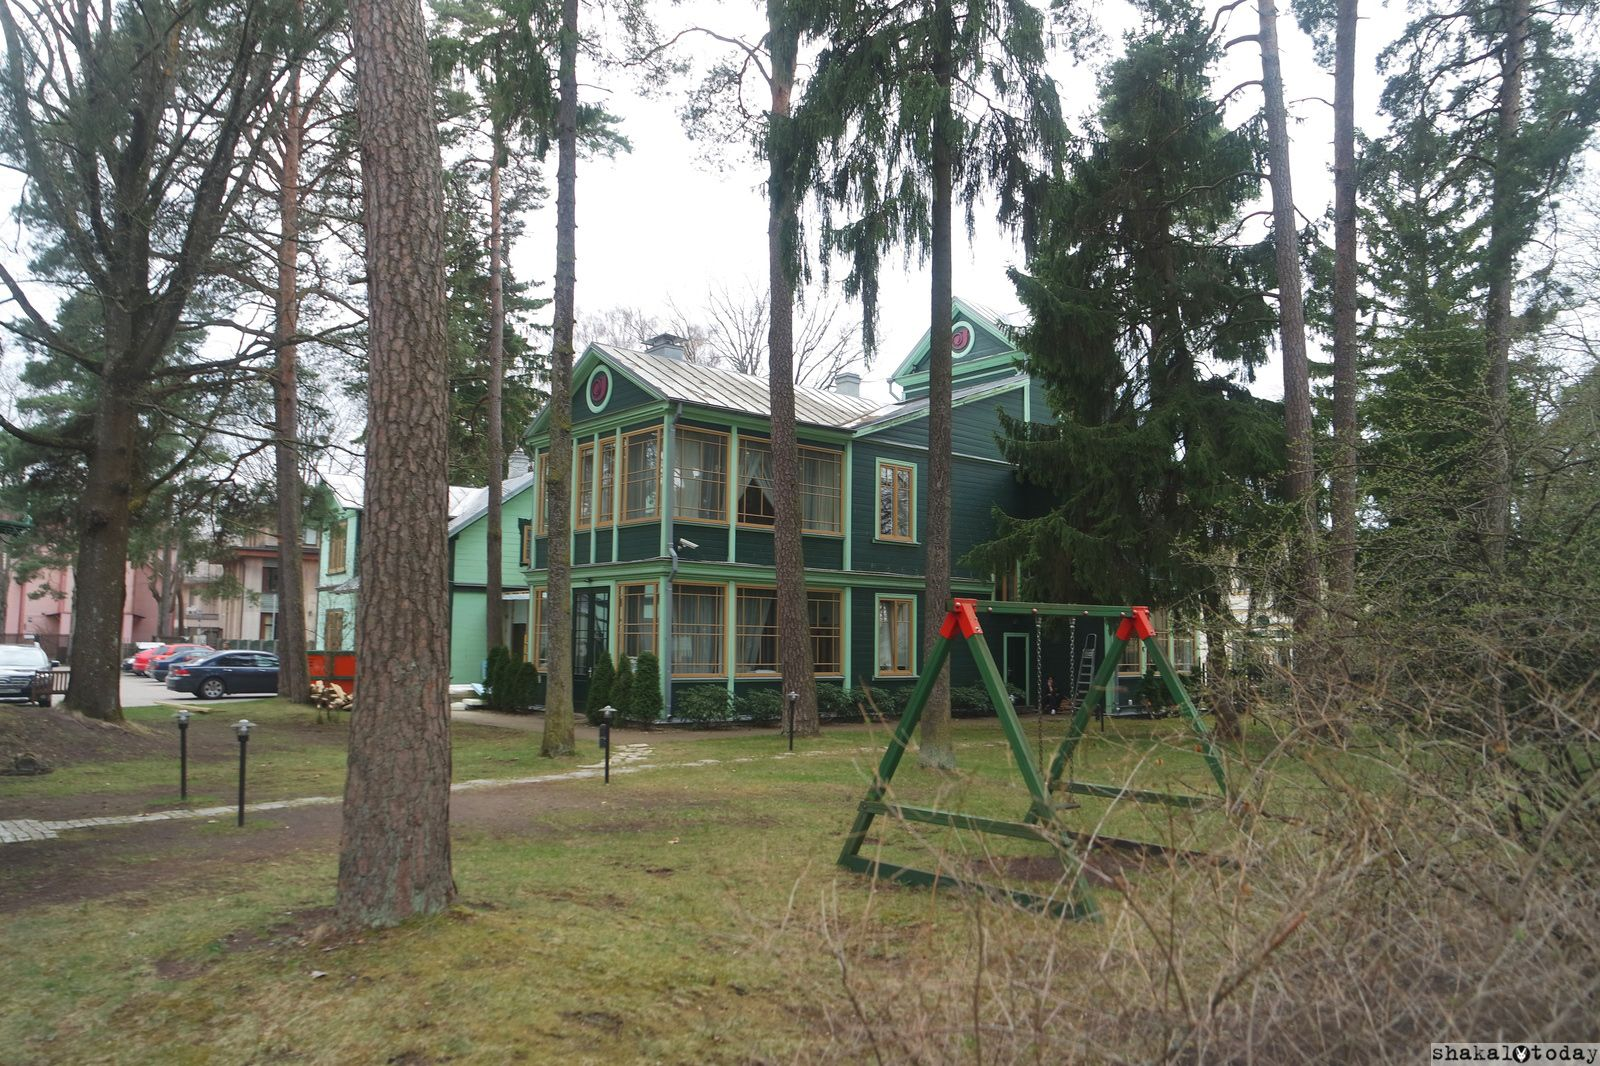 jurmala-shakal-today-0075.jpg